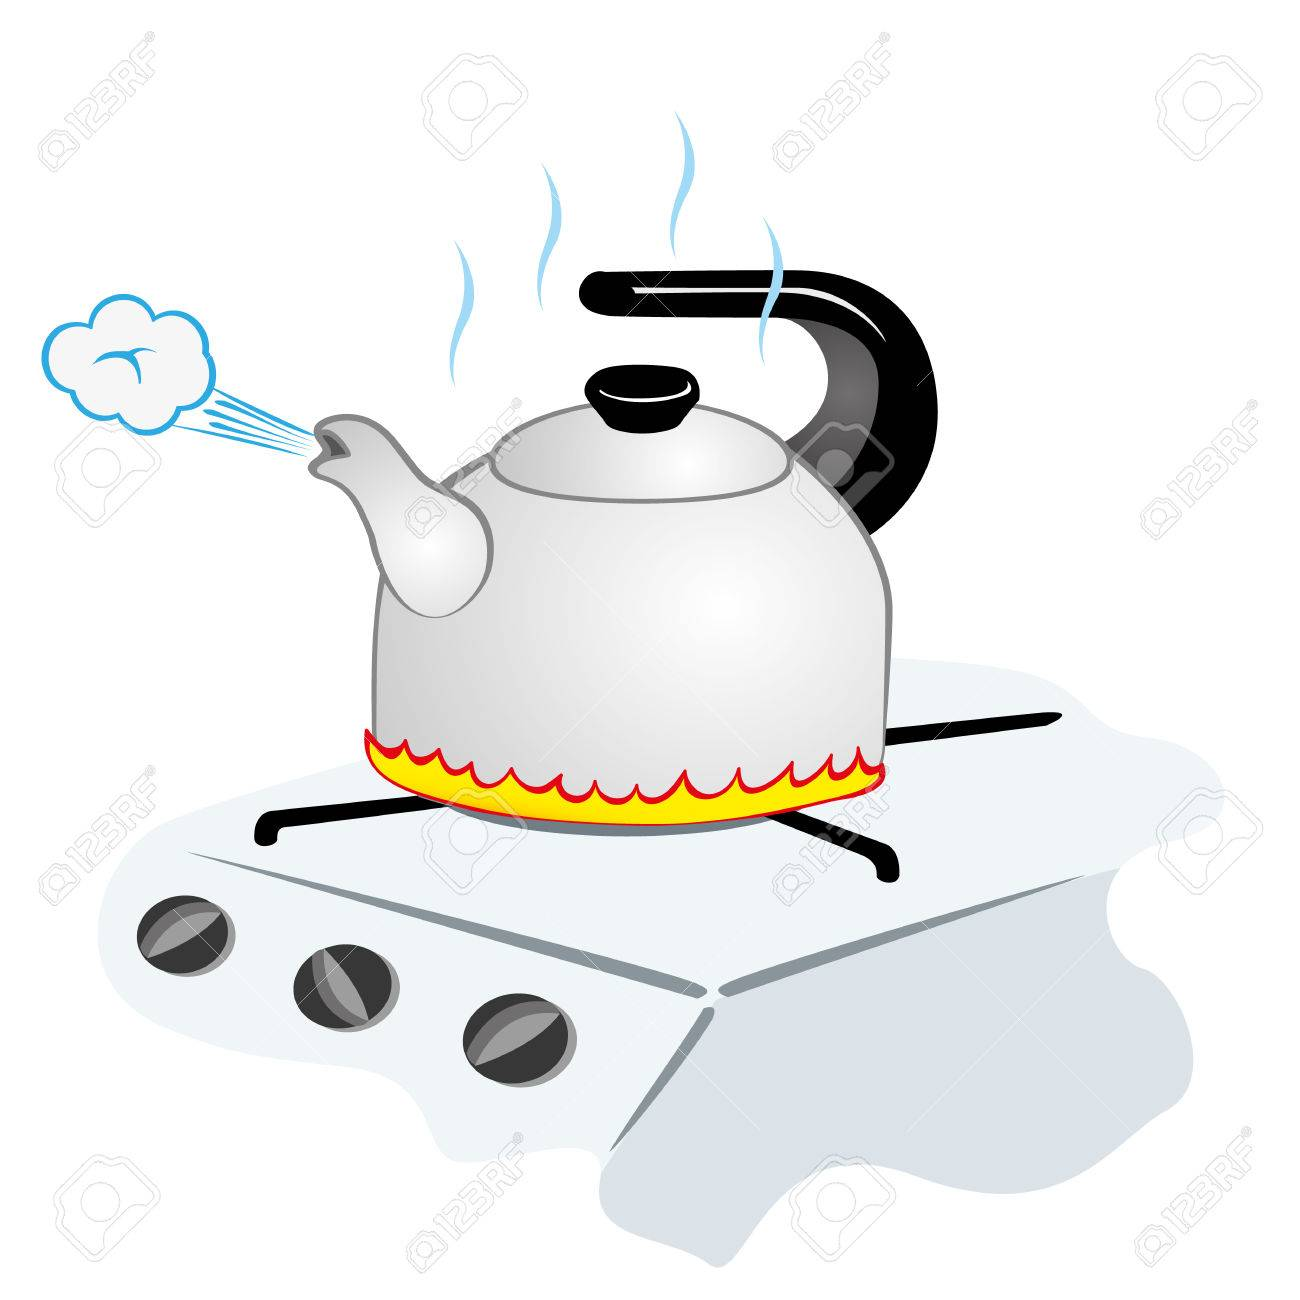 Illustration representing a kettle with boiling water on the...